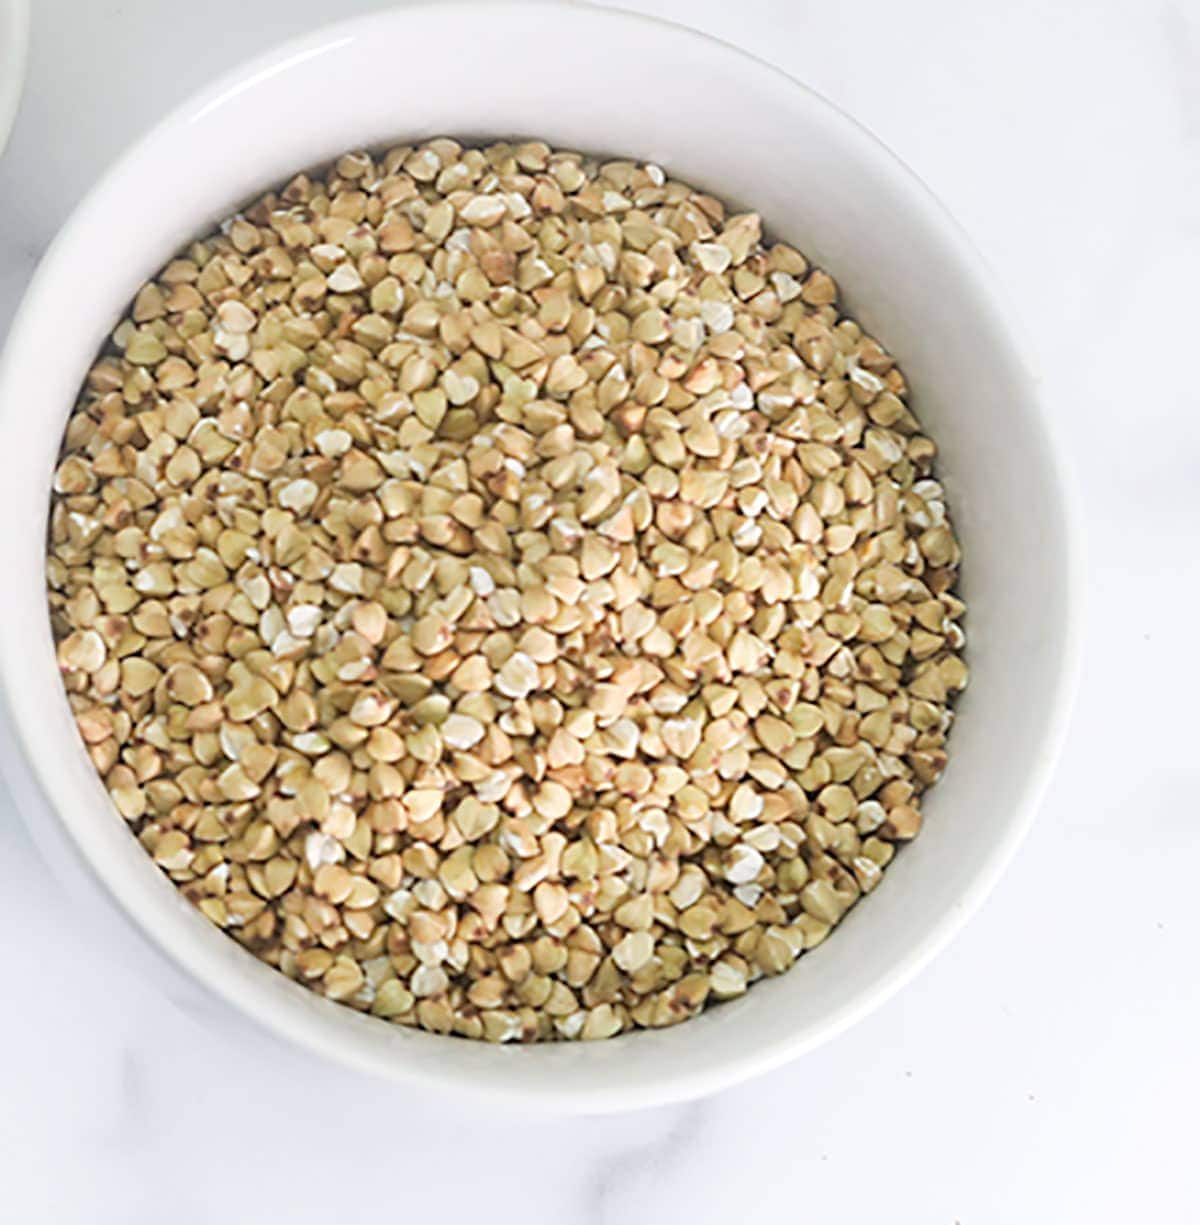 Close up image of buckwheat in a white bowl